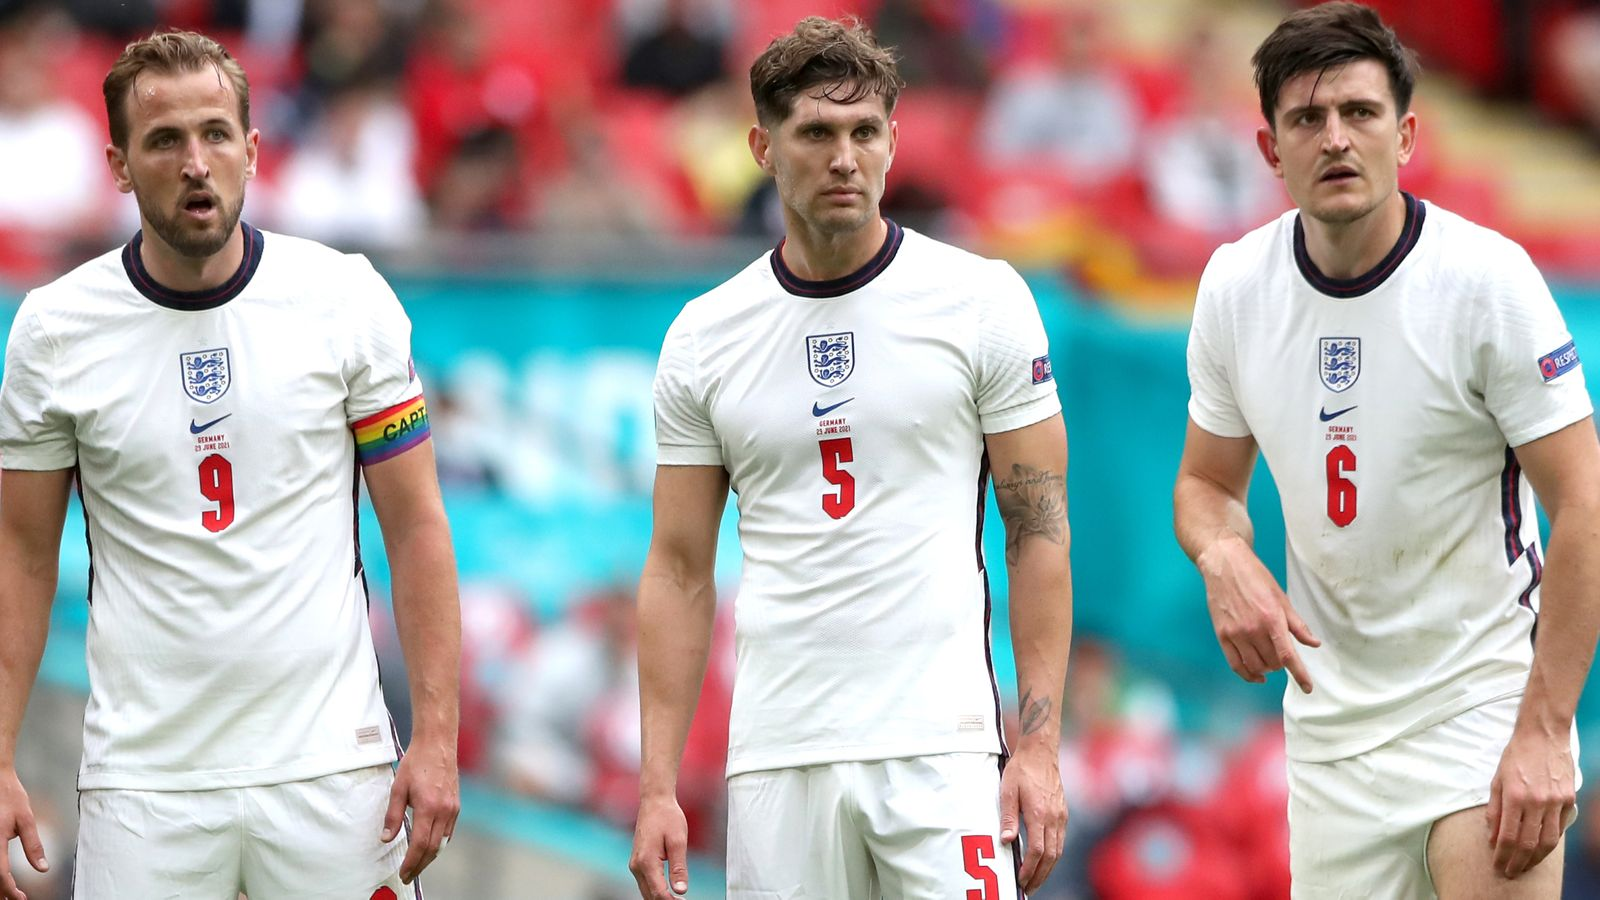 What is England's Strength?